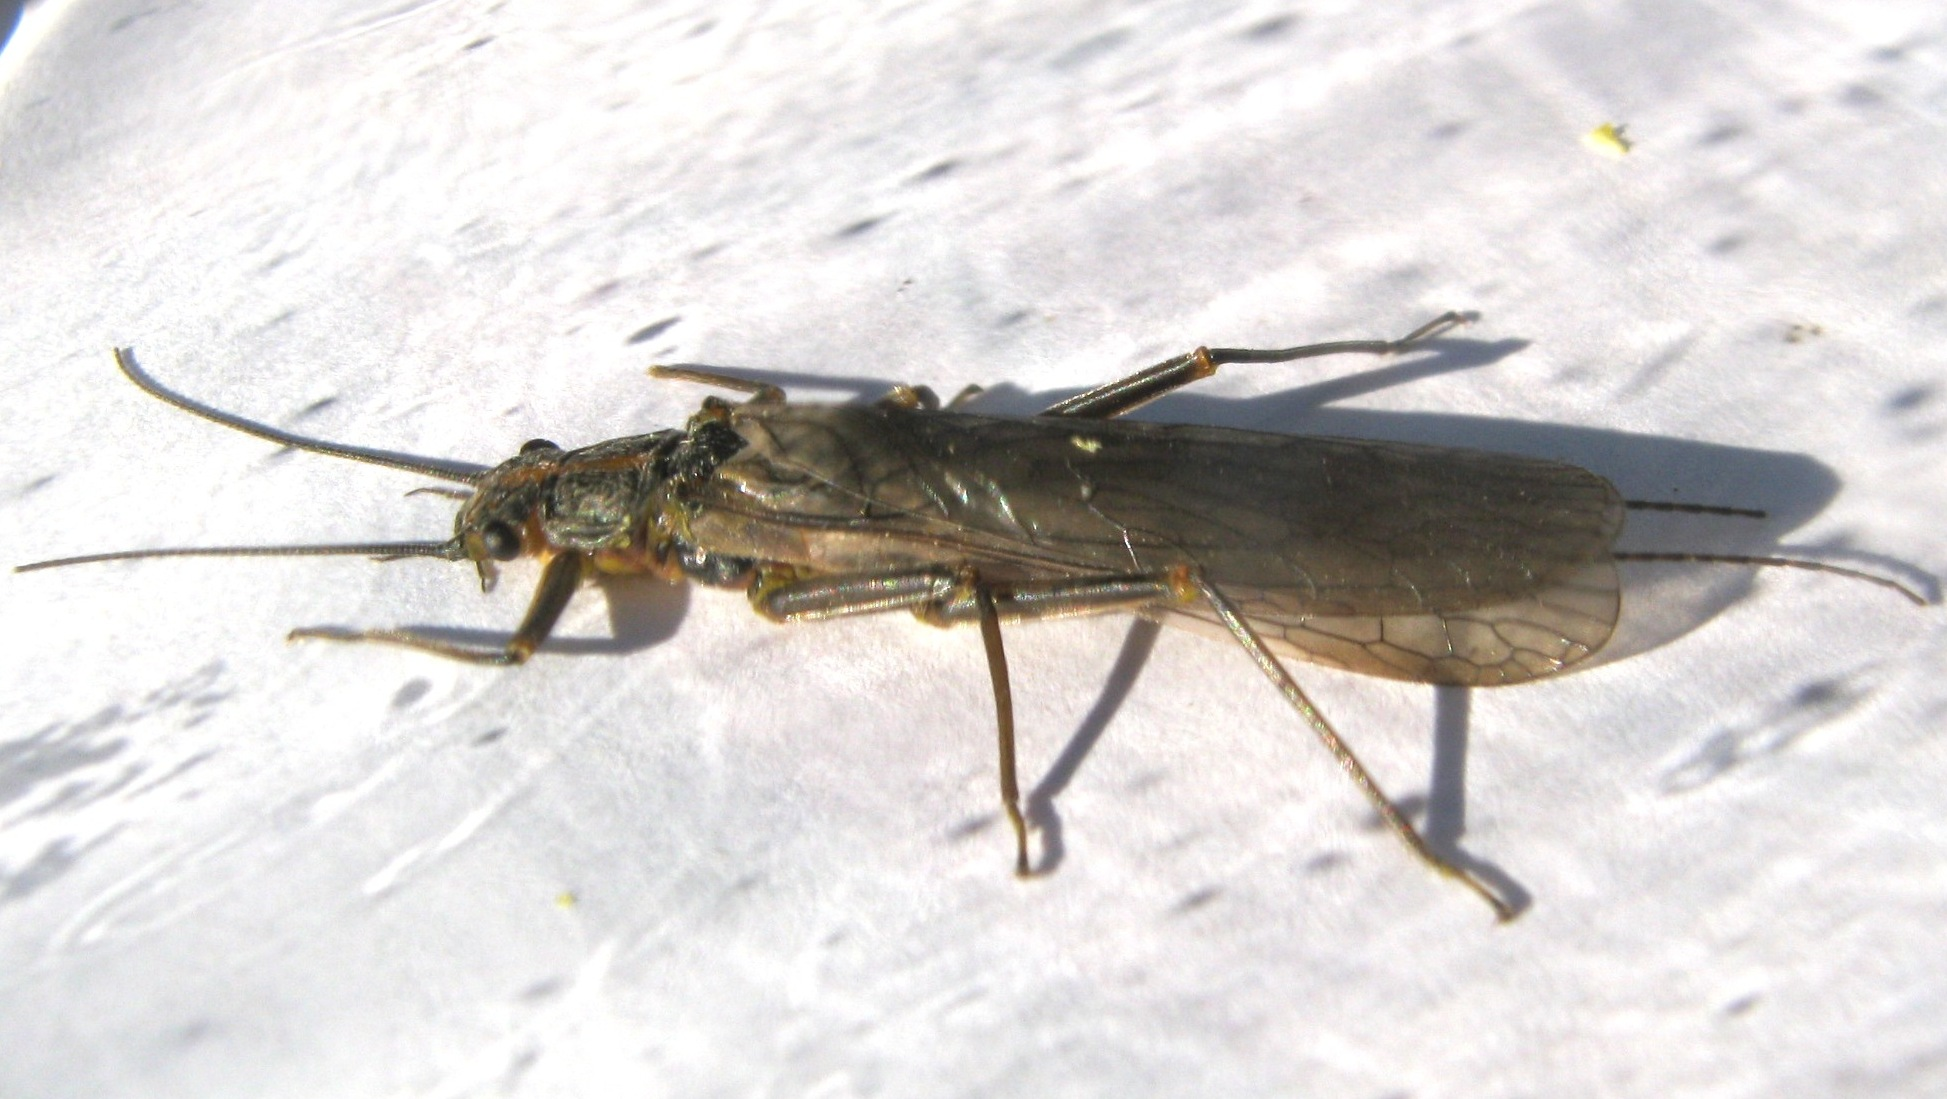 Female Skwala curvata (Large Springfly) Stonefly Adult from the Lower Yuba River in CA